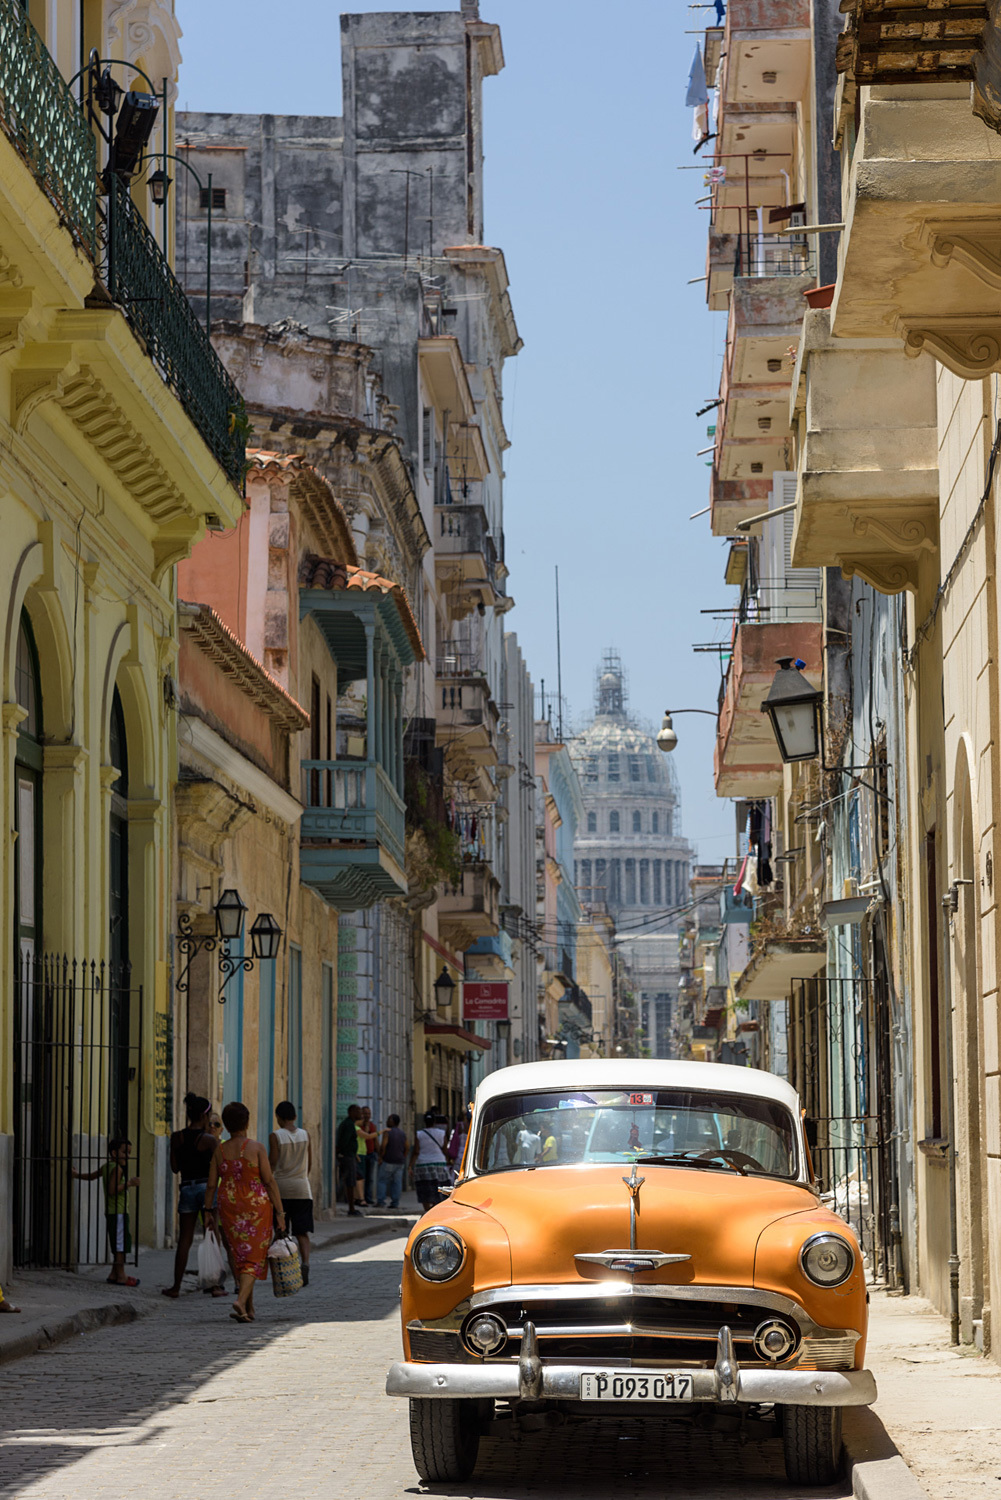 The Guardian's Oliver Wainwright writes that Havana's real estate micro-capitalism